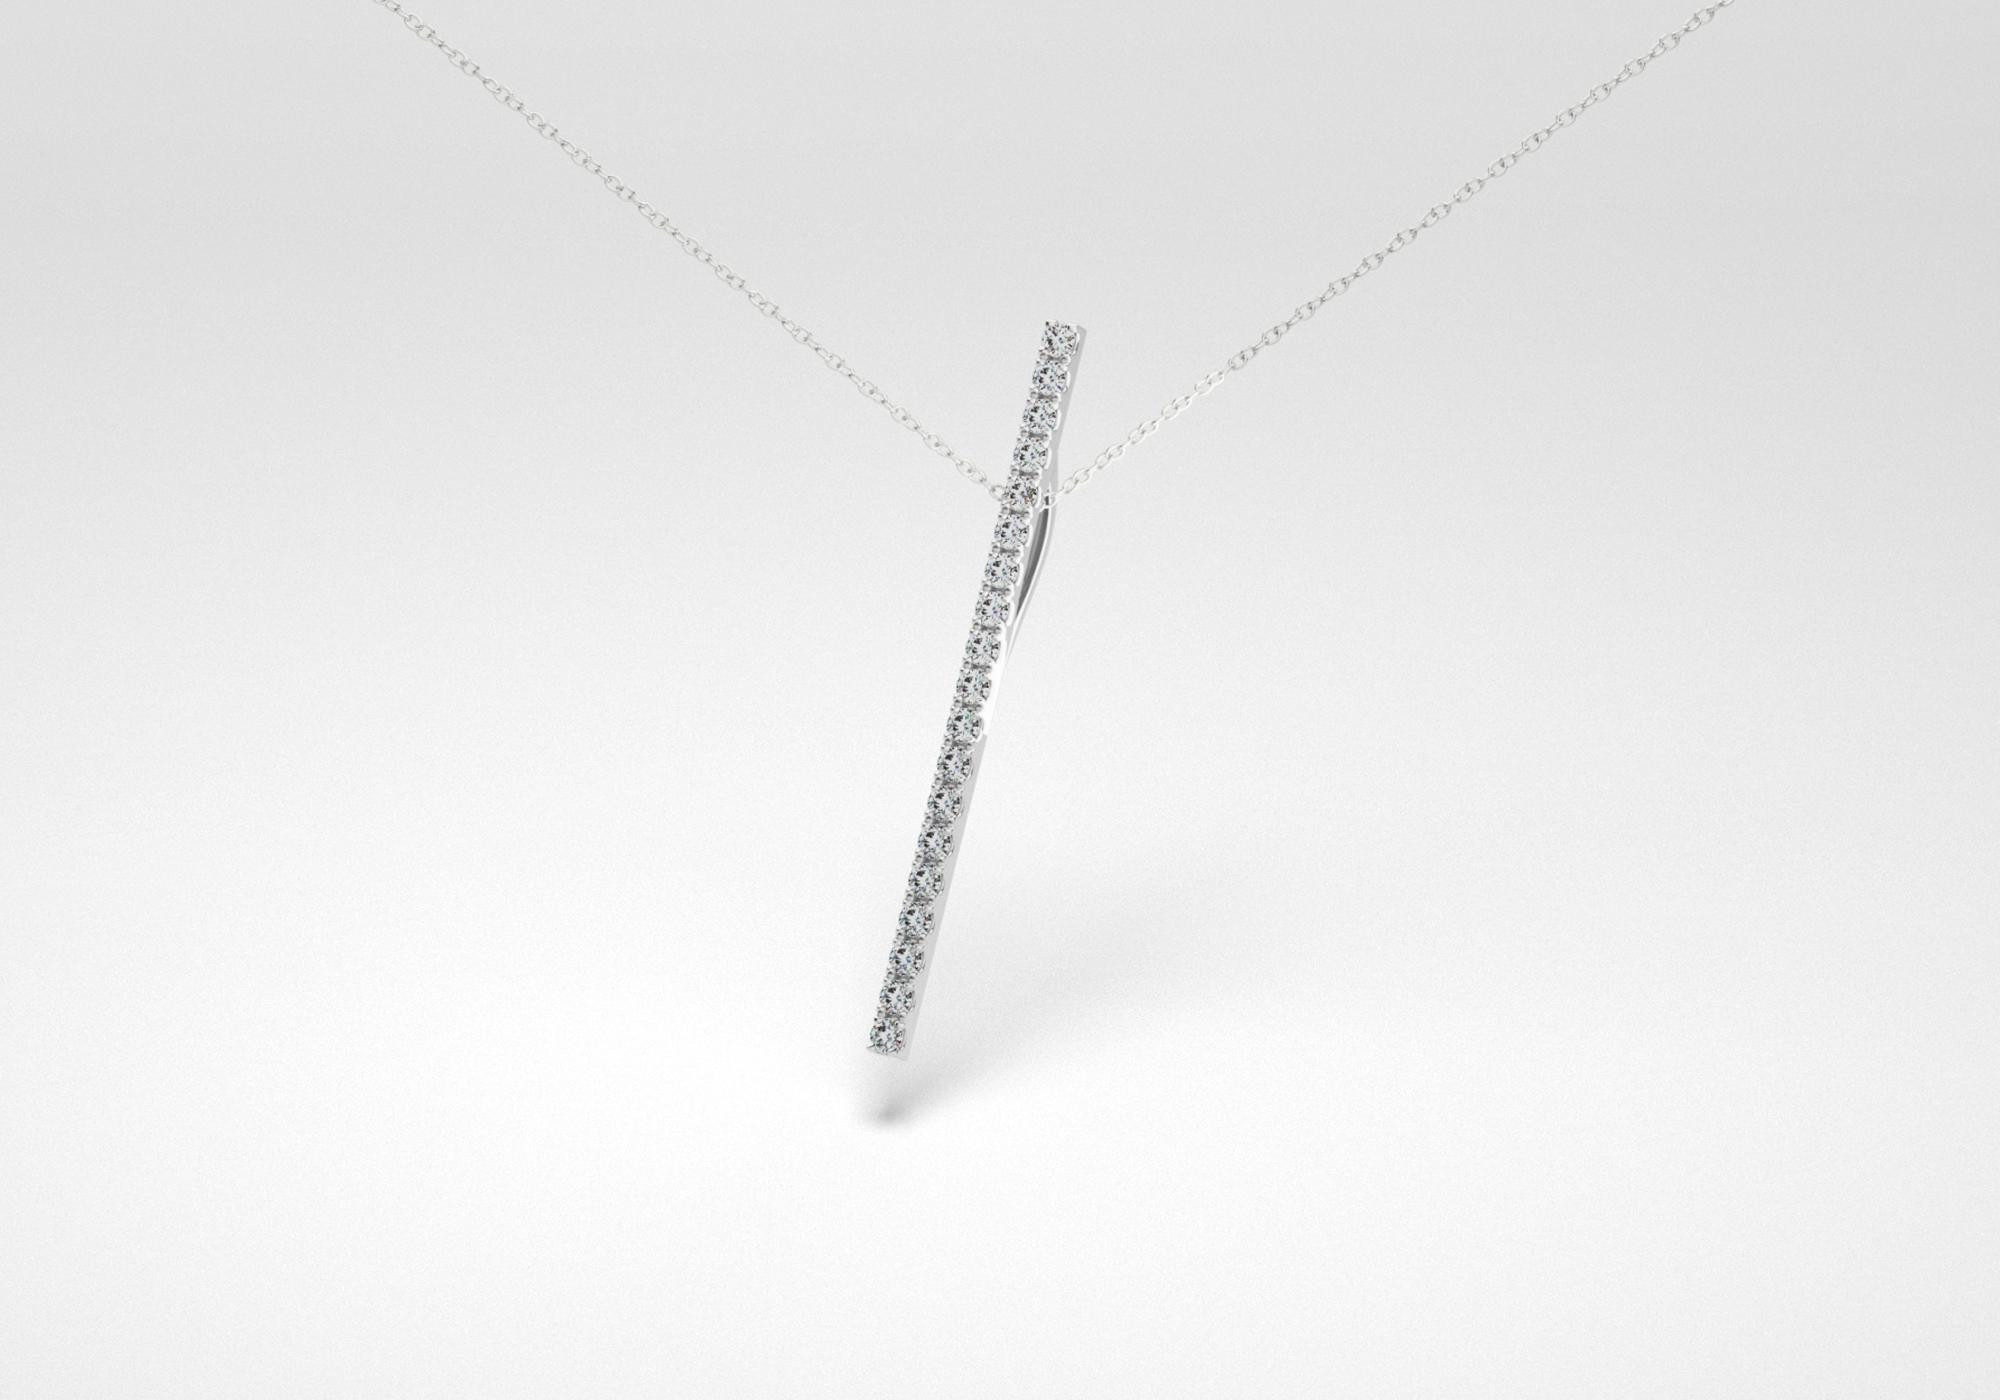 The Line Necklace - Gray - White Gold 18 Kt